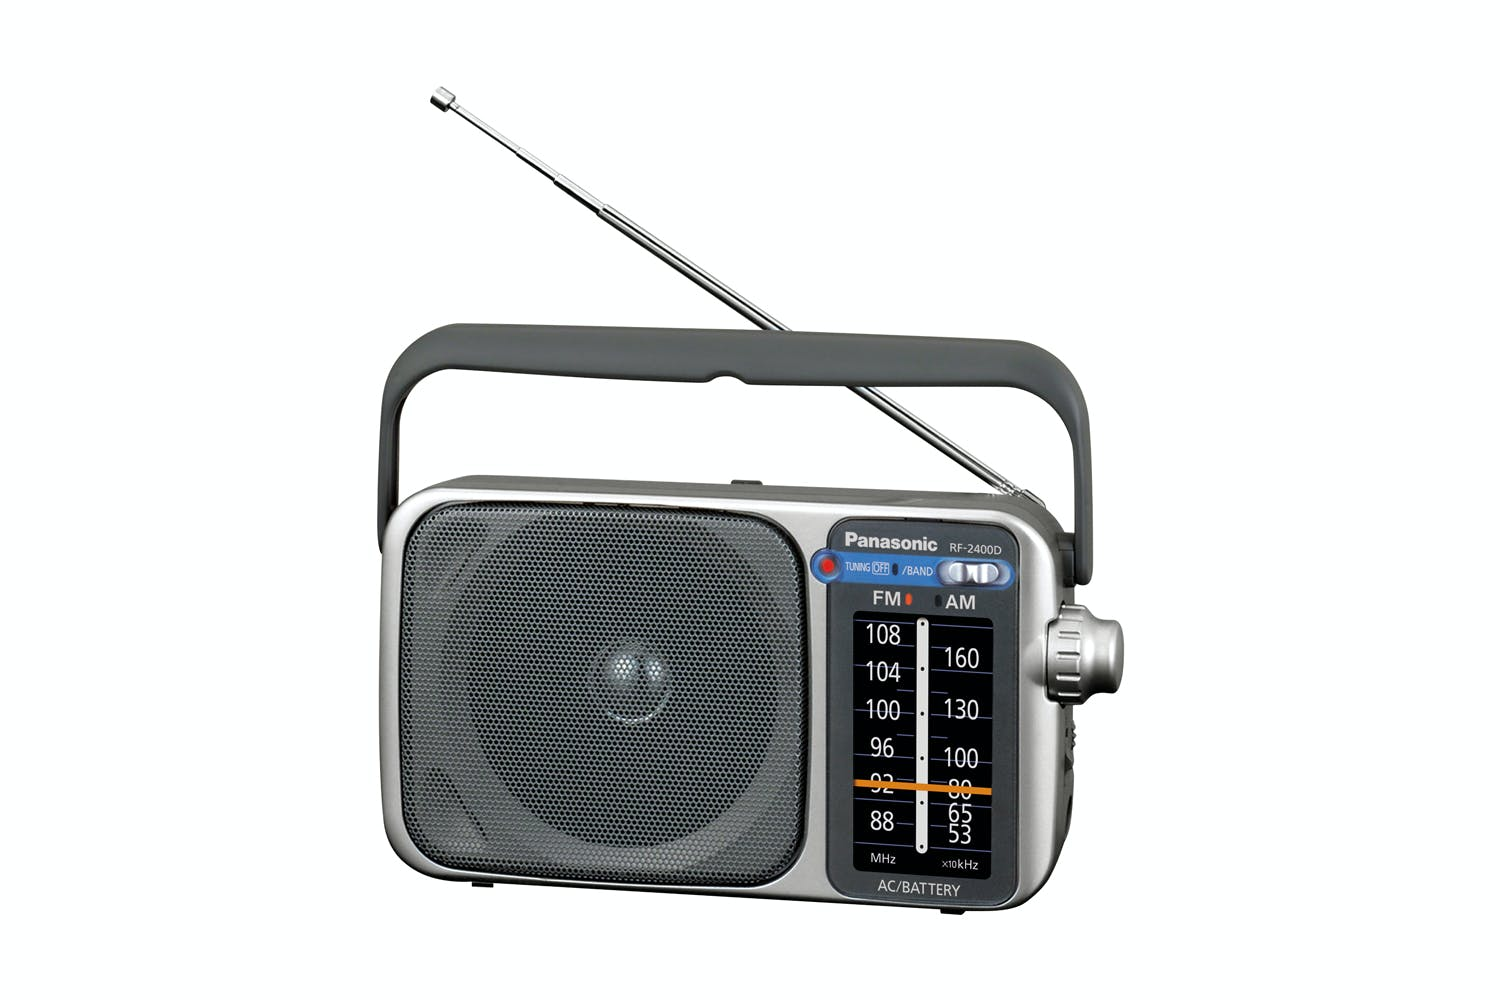 panasonic portable radio harvey norman new zealand. Black Bedroom Furniture Sets. Home Design Ideas